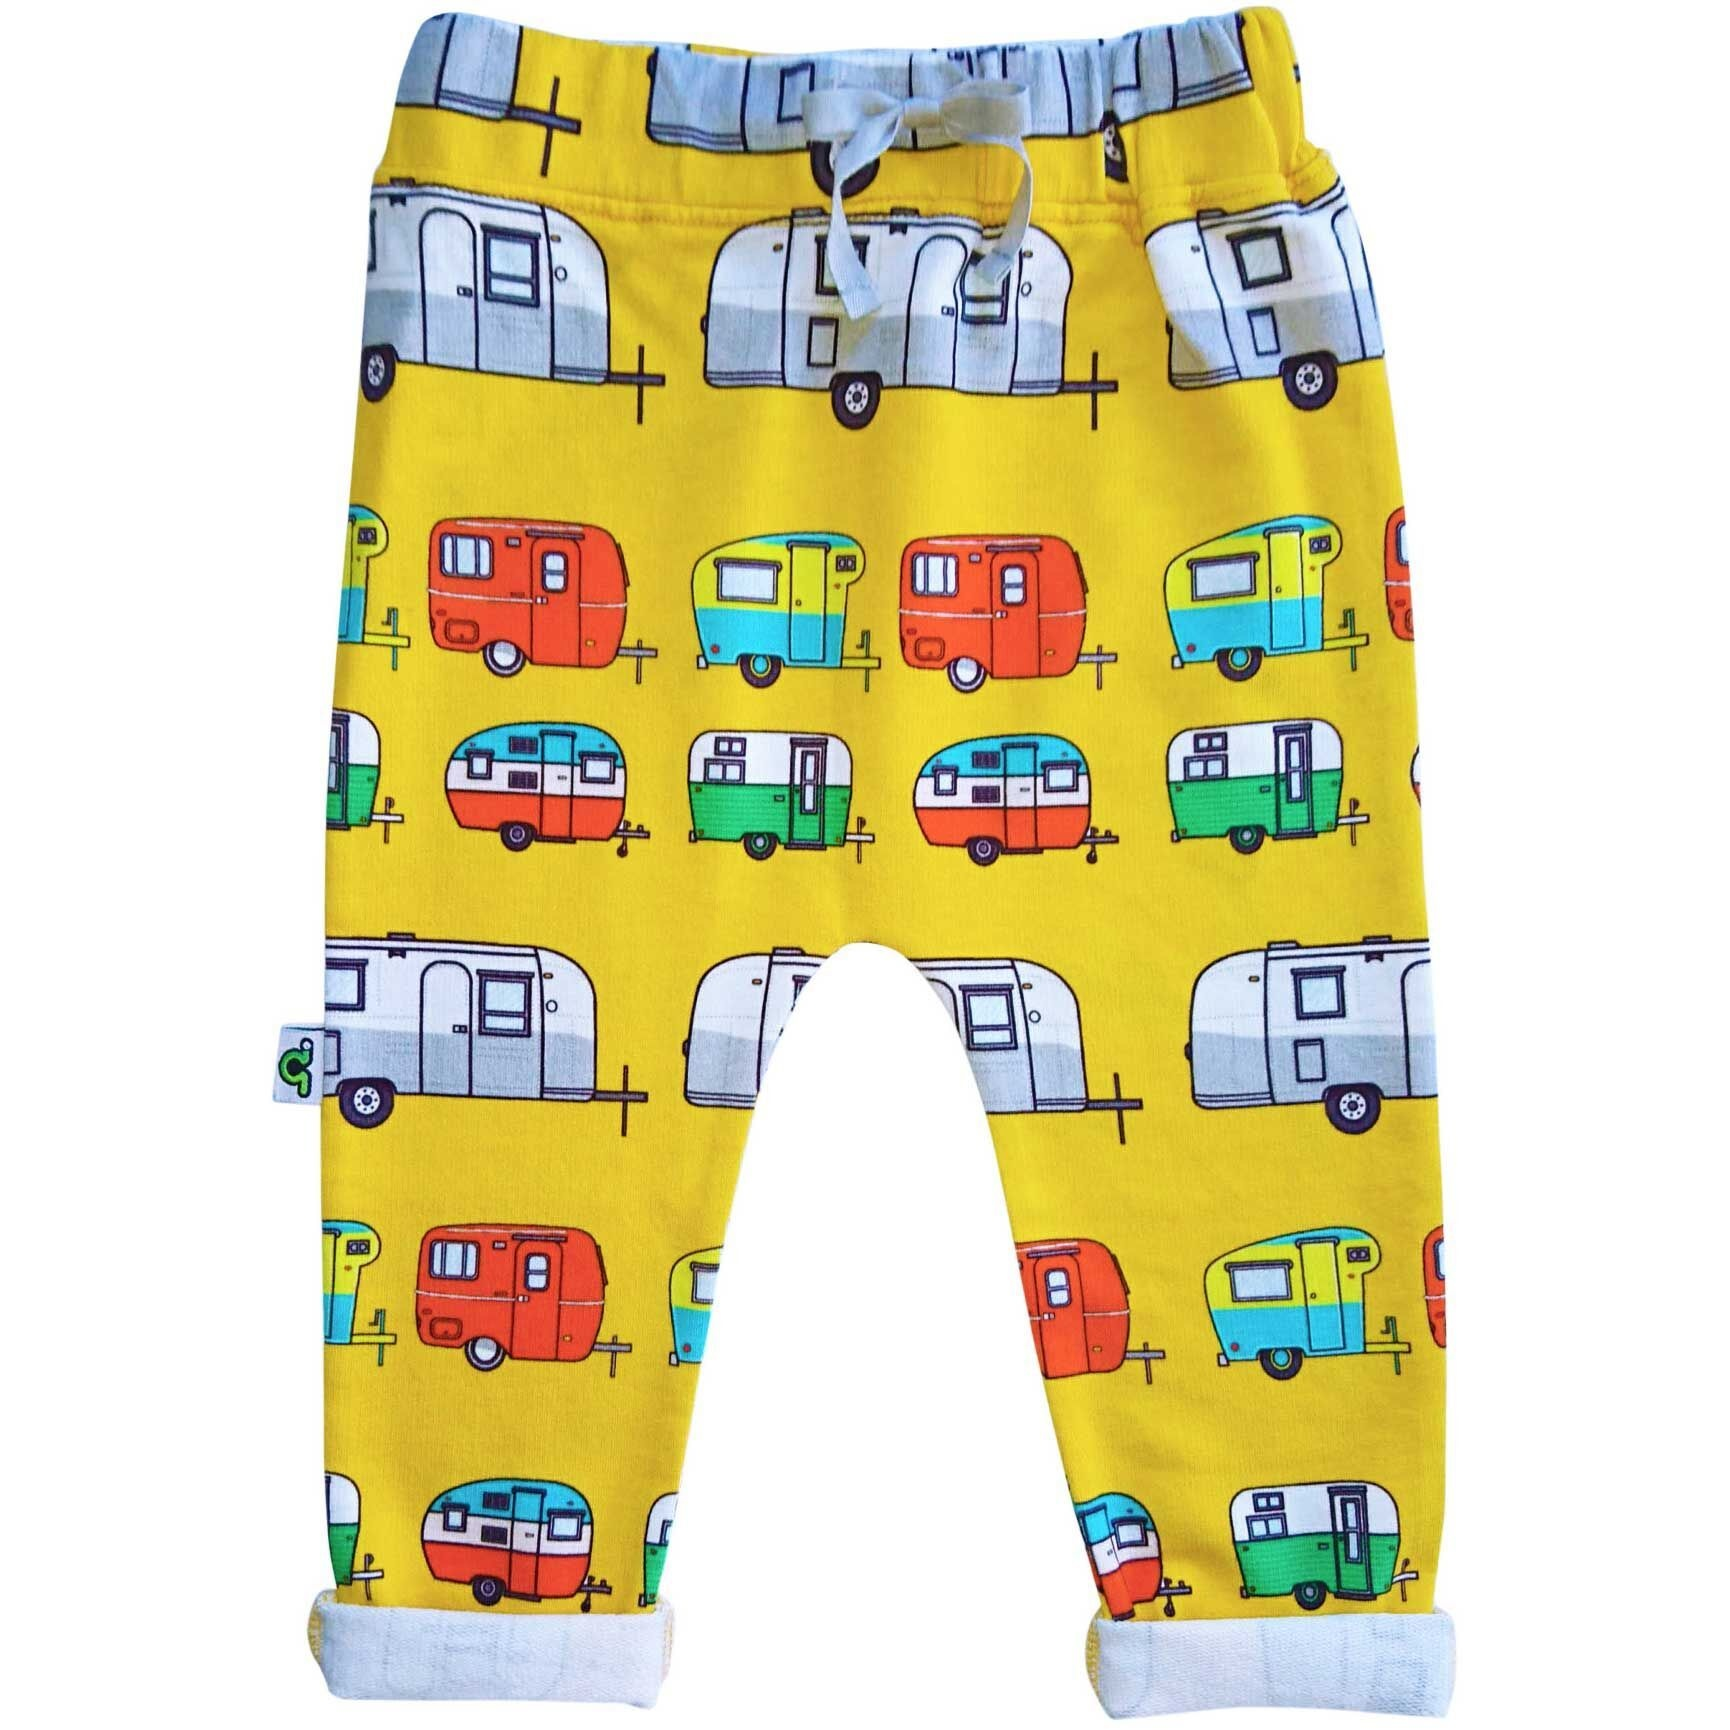 Inchworm Alley Pantalons Jaune Roulottes